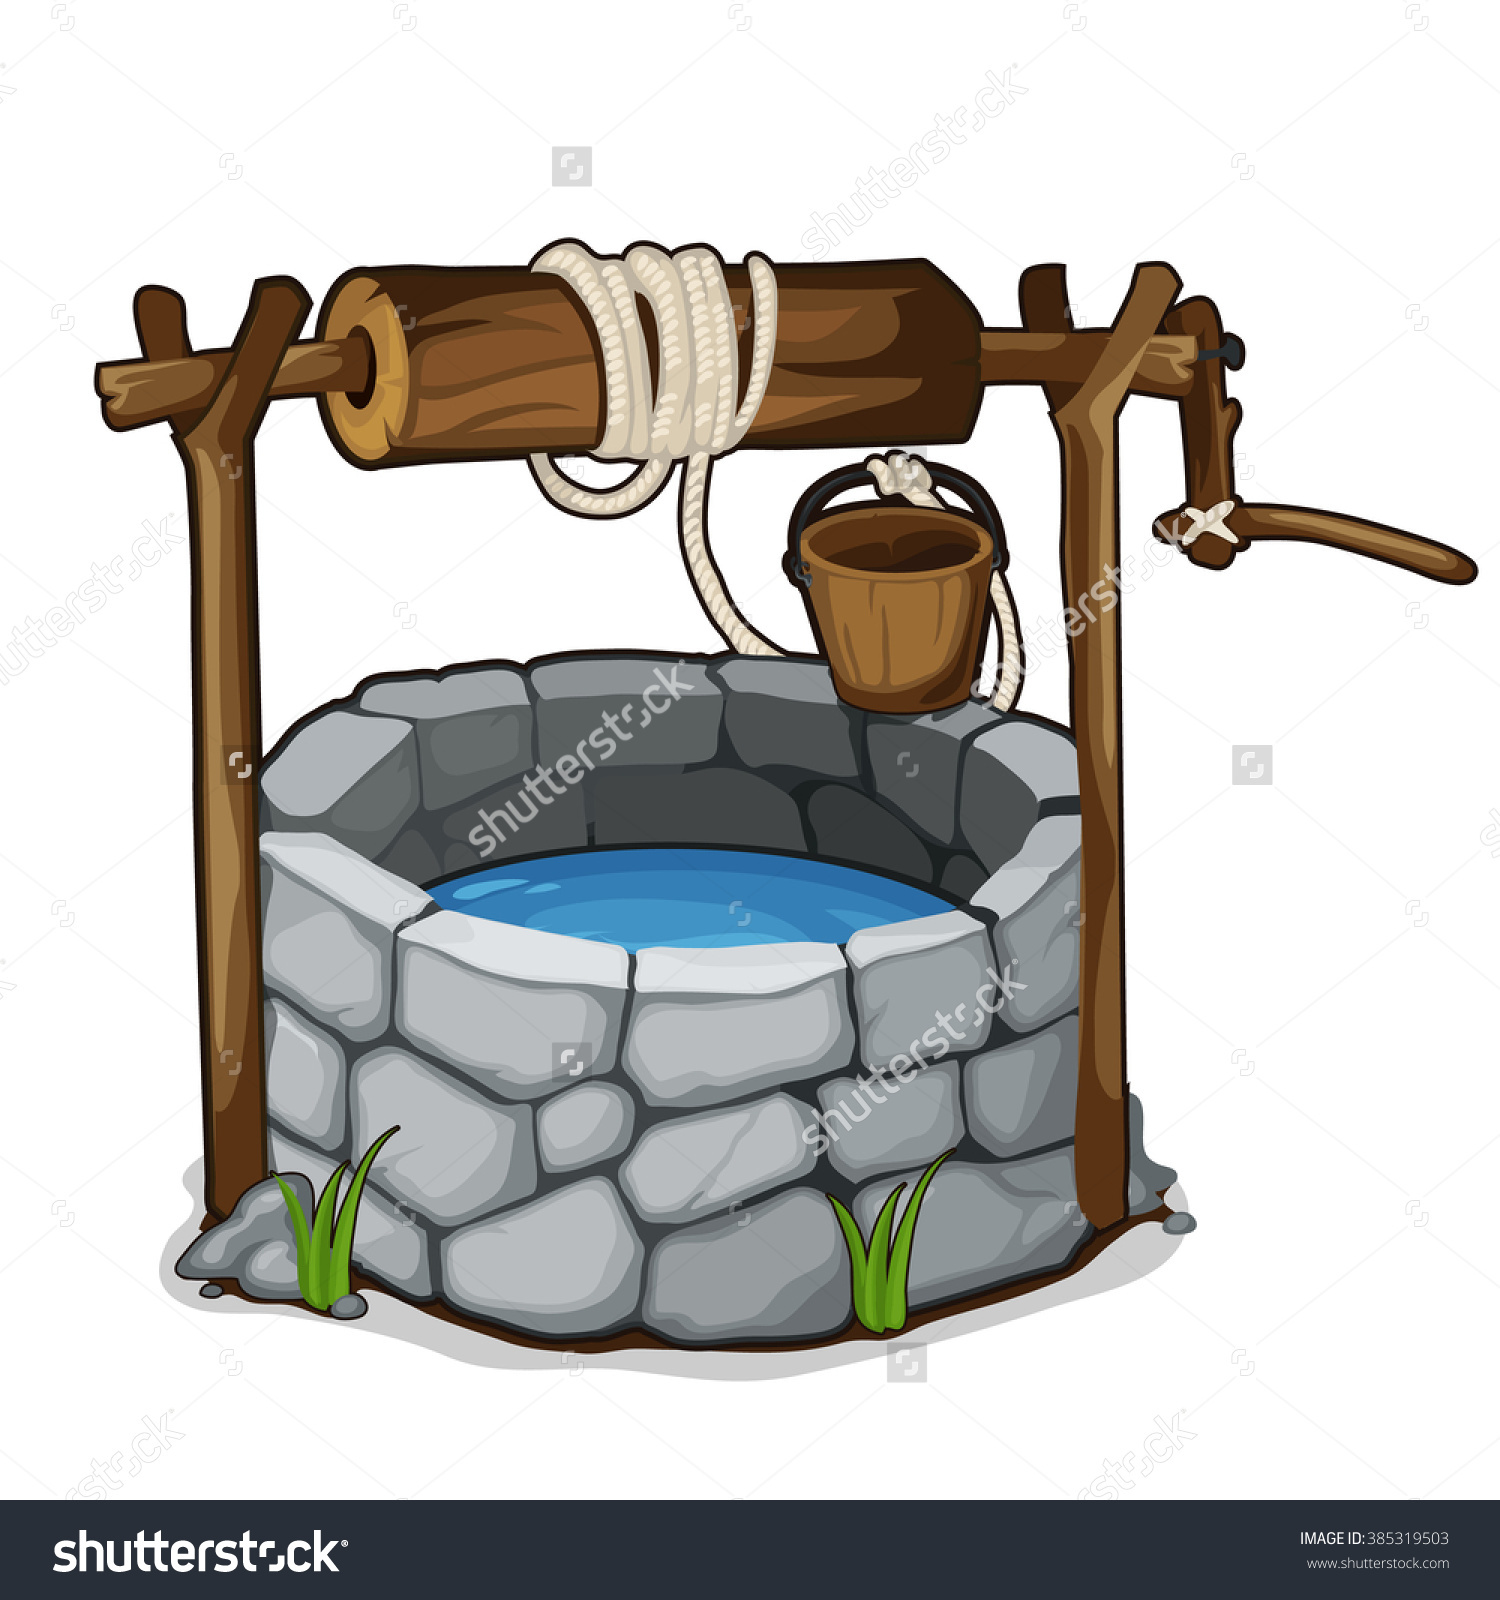 Stone Well Bucket Drinking Water Isolated Stock Vector 385319503.